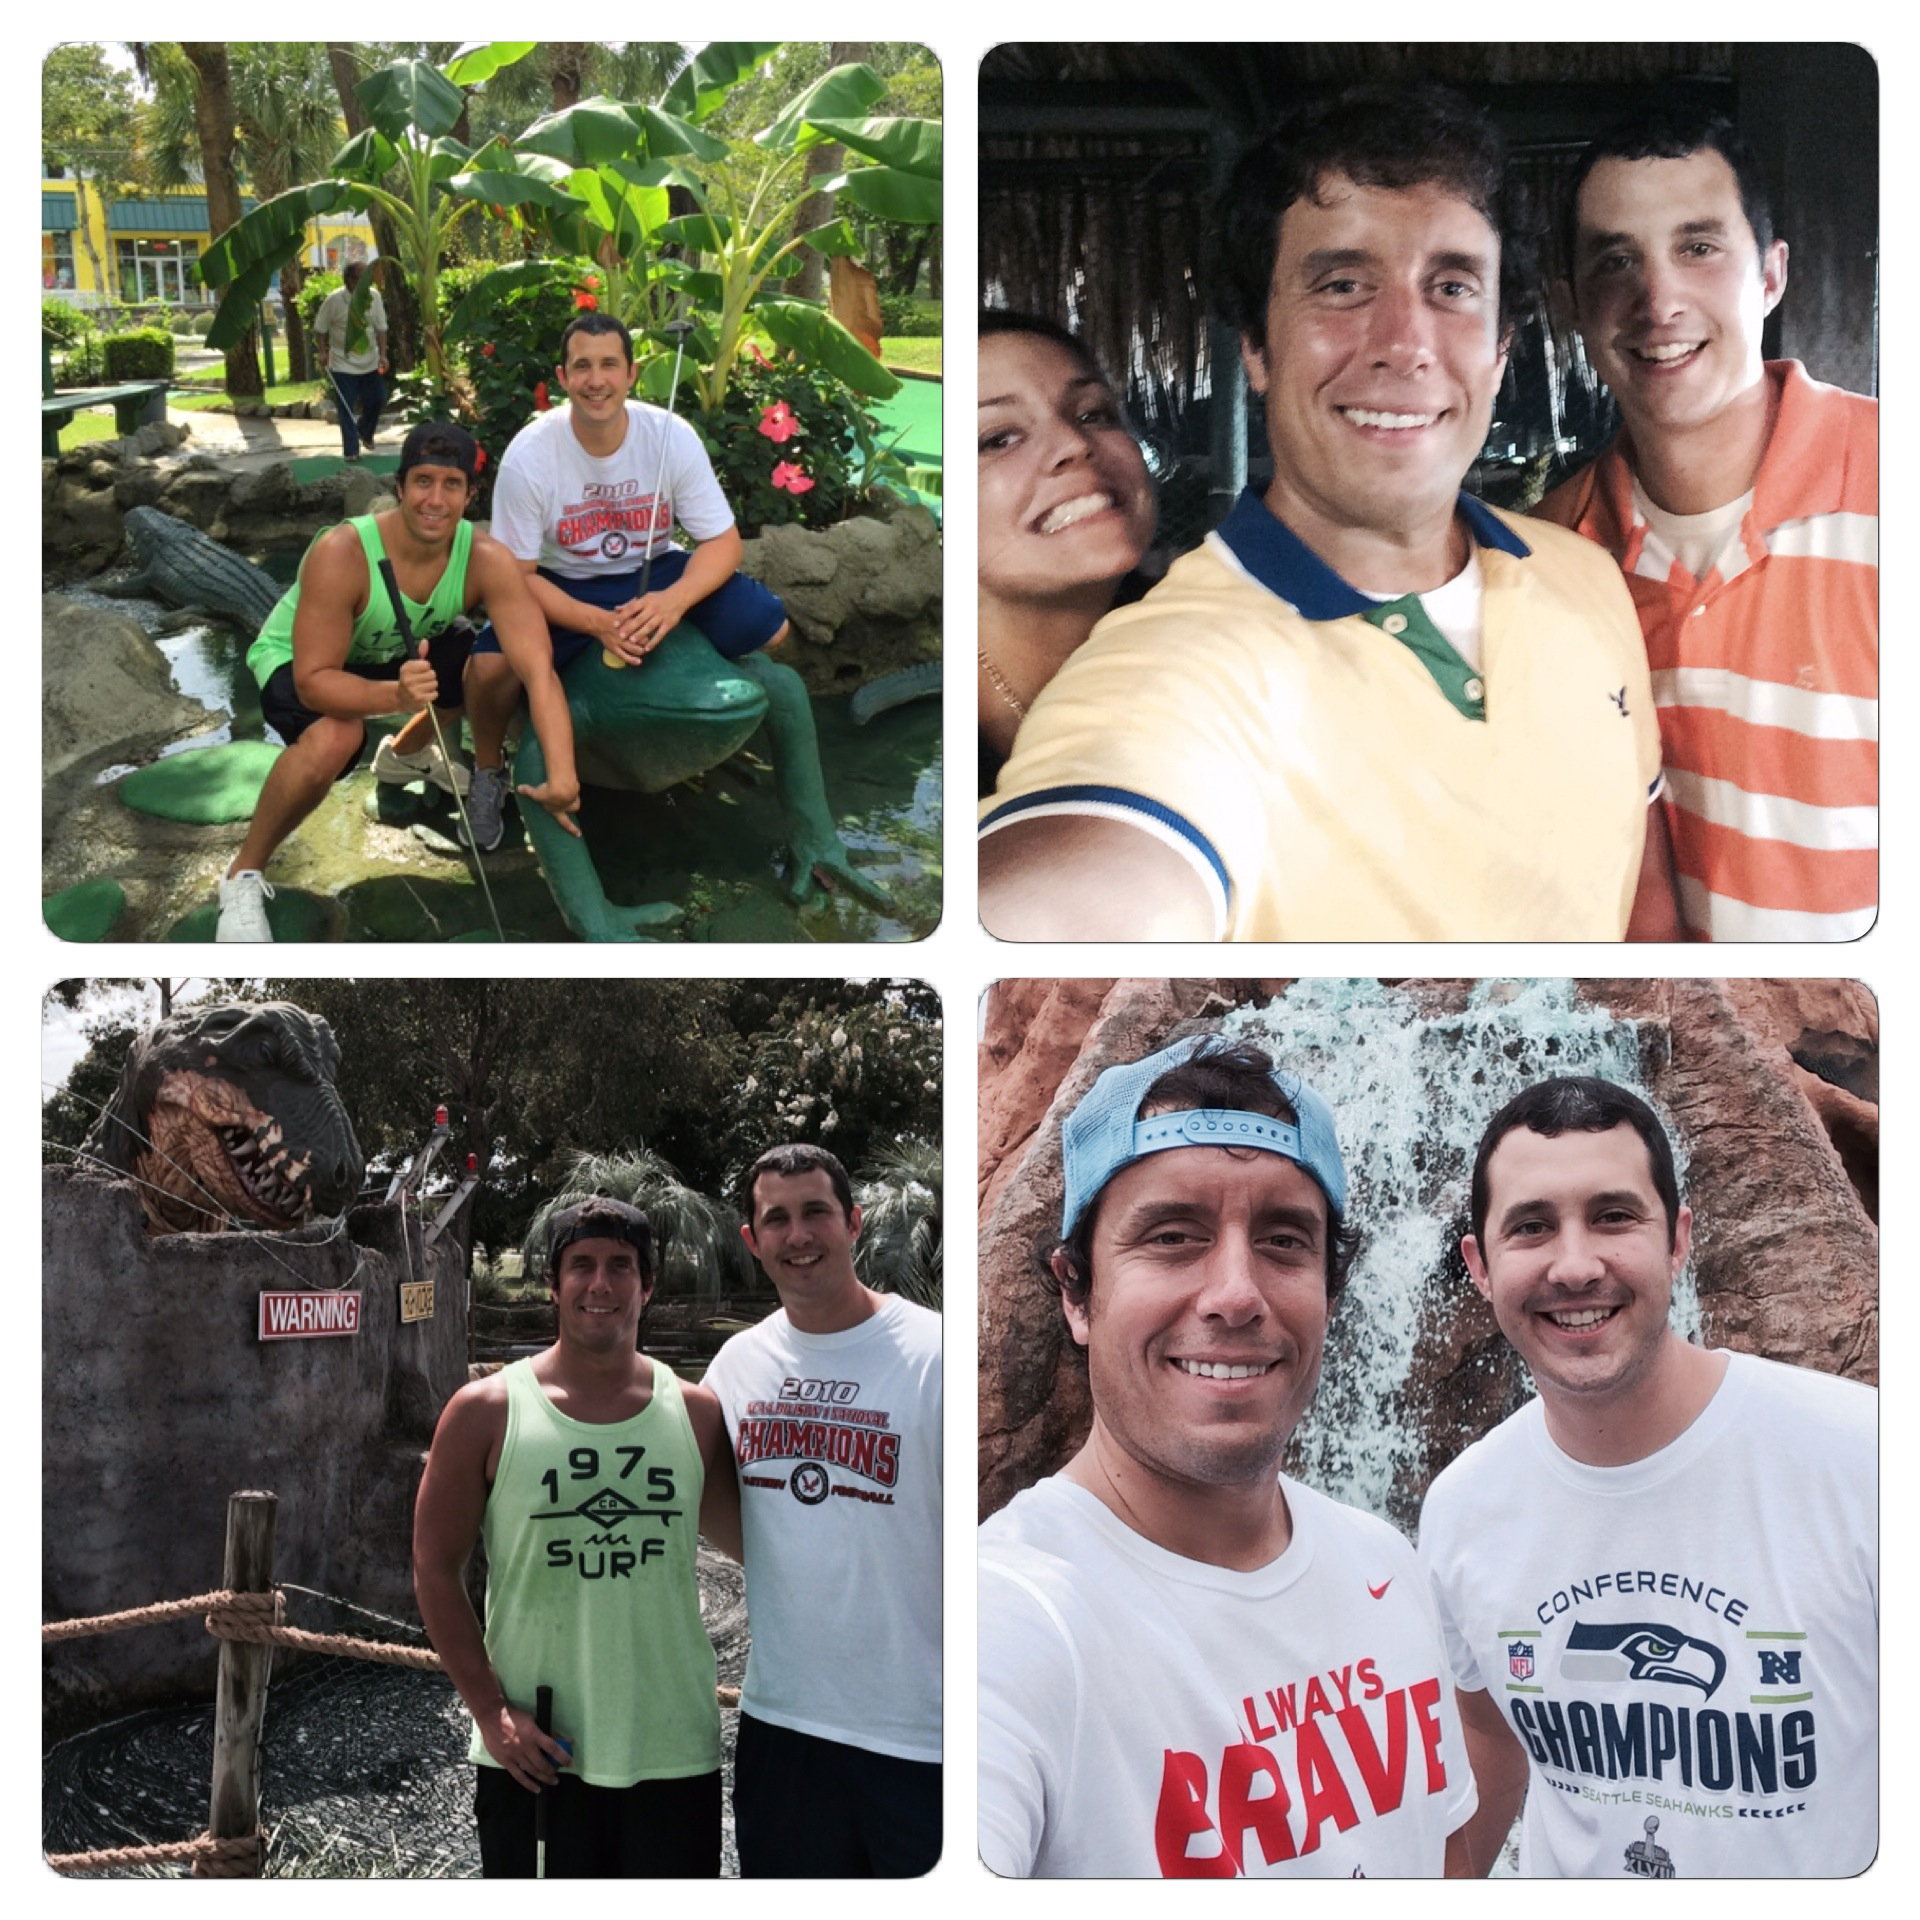 We took a photo at each course we visited. Going clockwise starting with the image in the upper right hand corner: Mt. Atlanticus, Shipwreck, Jurassic, Jungle Lagoon.